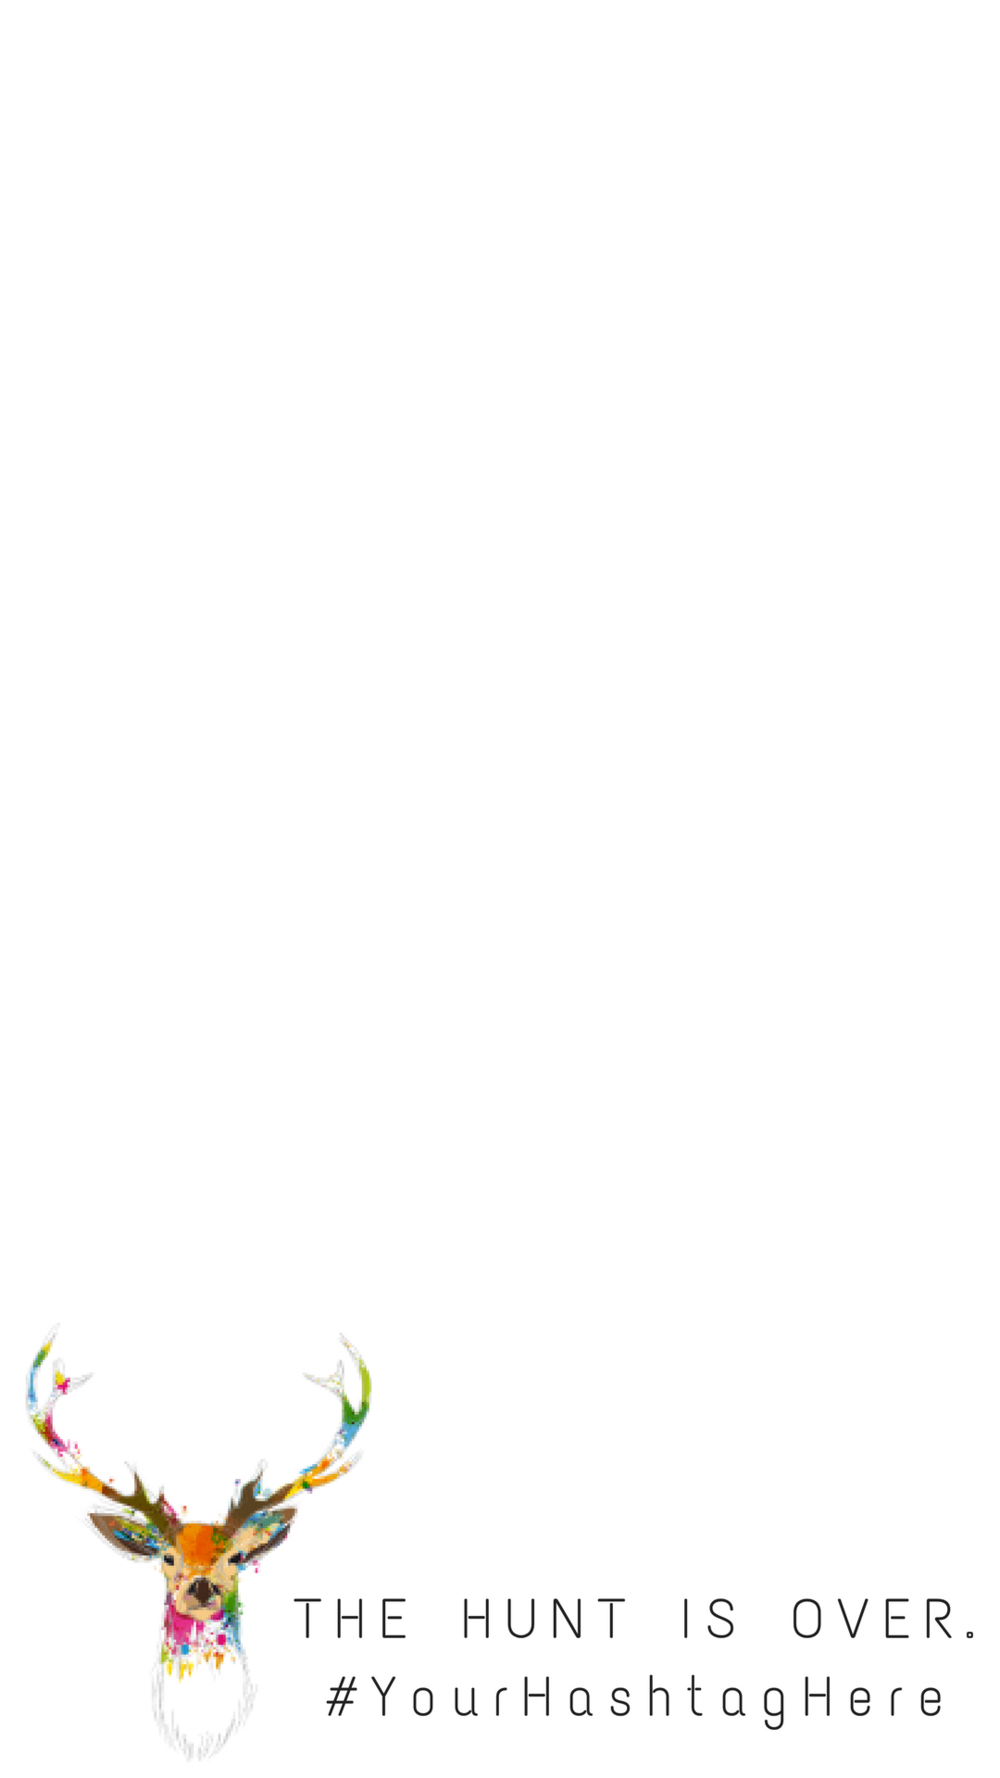 Geofilter 3.png